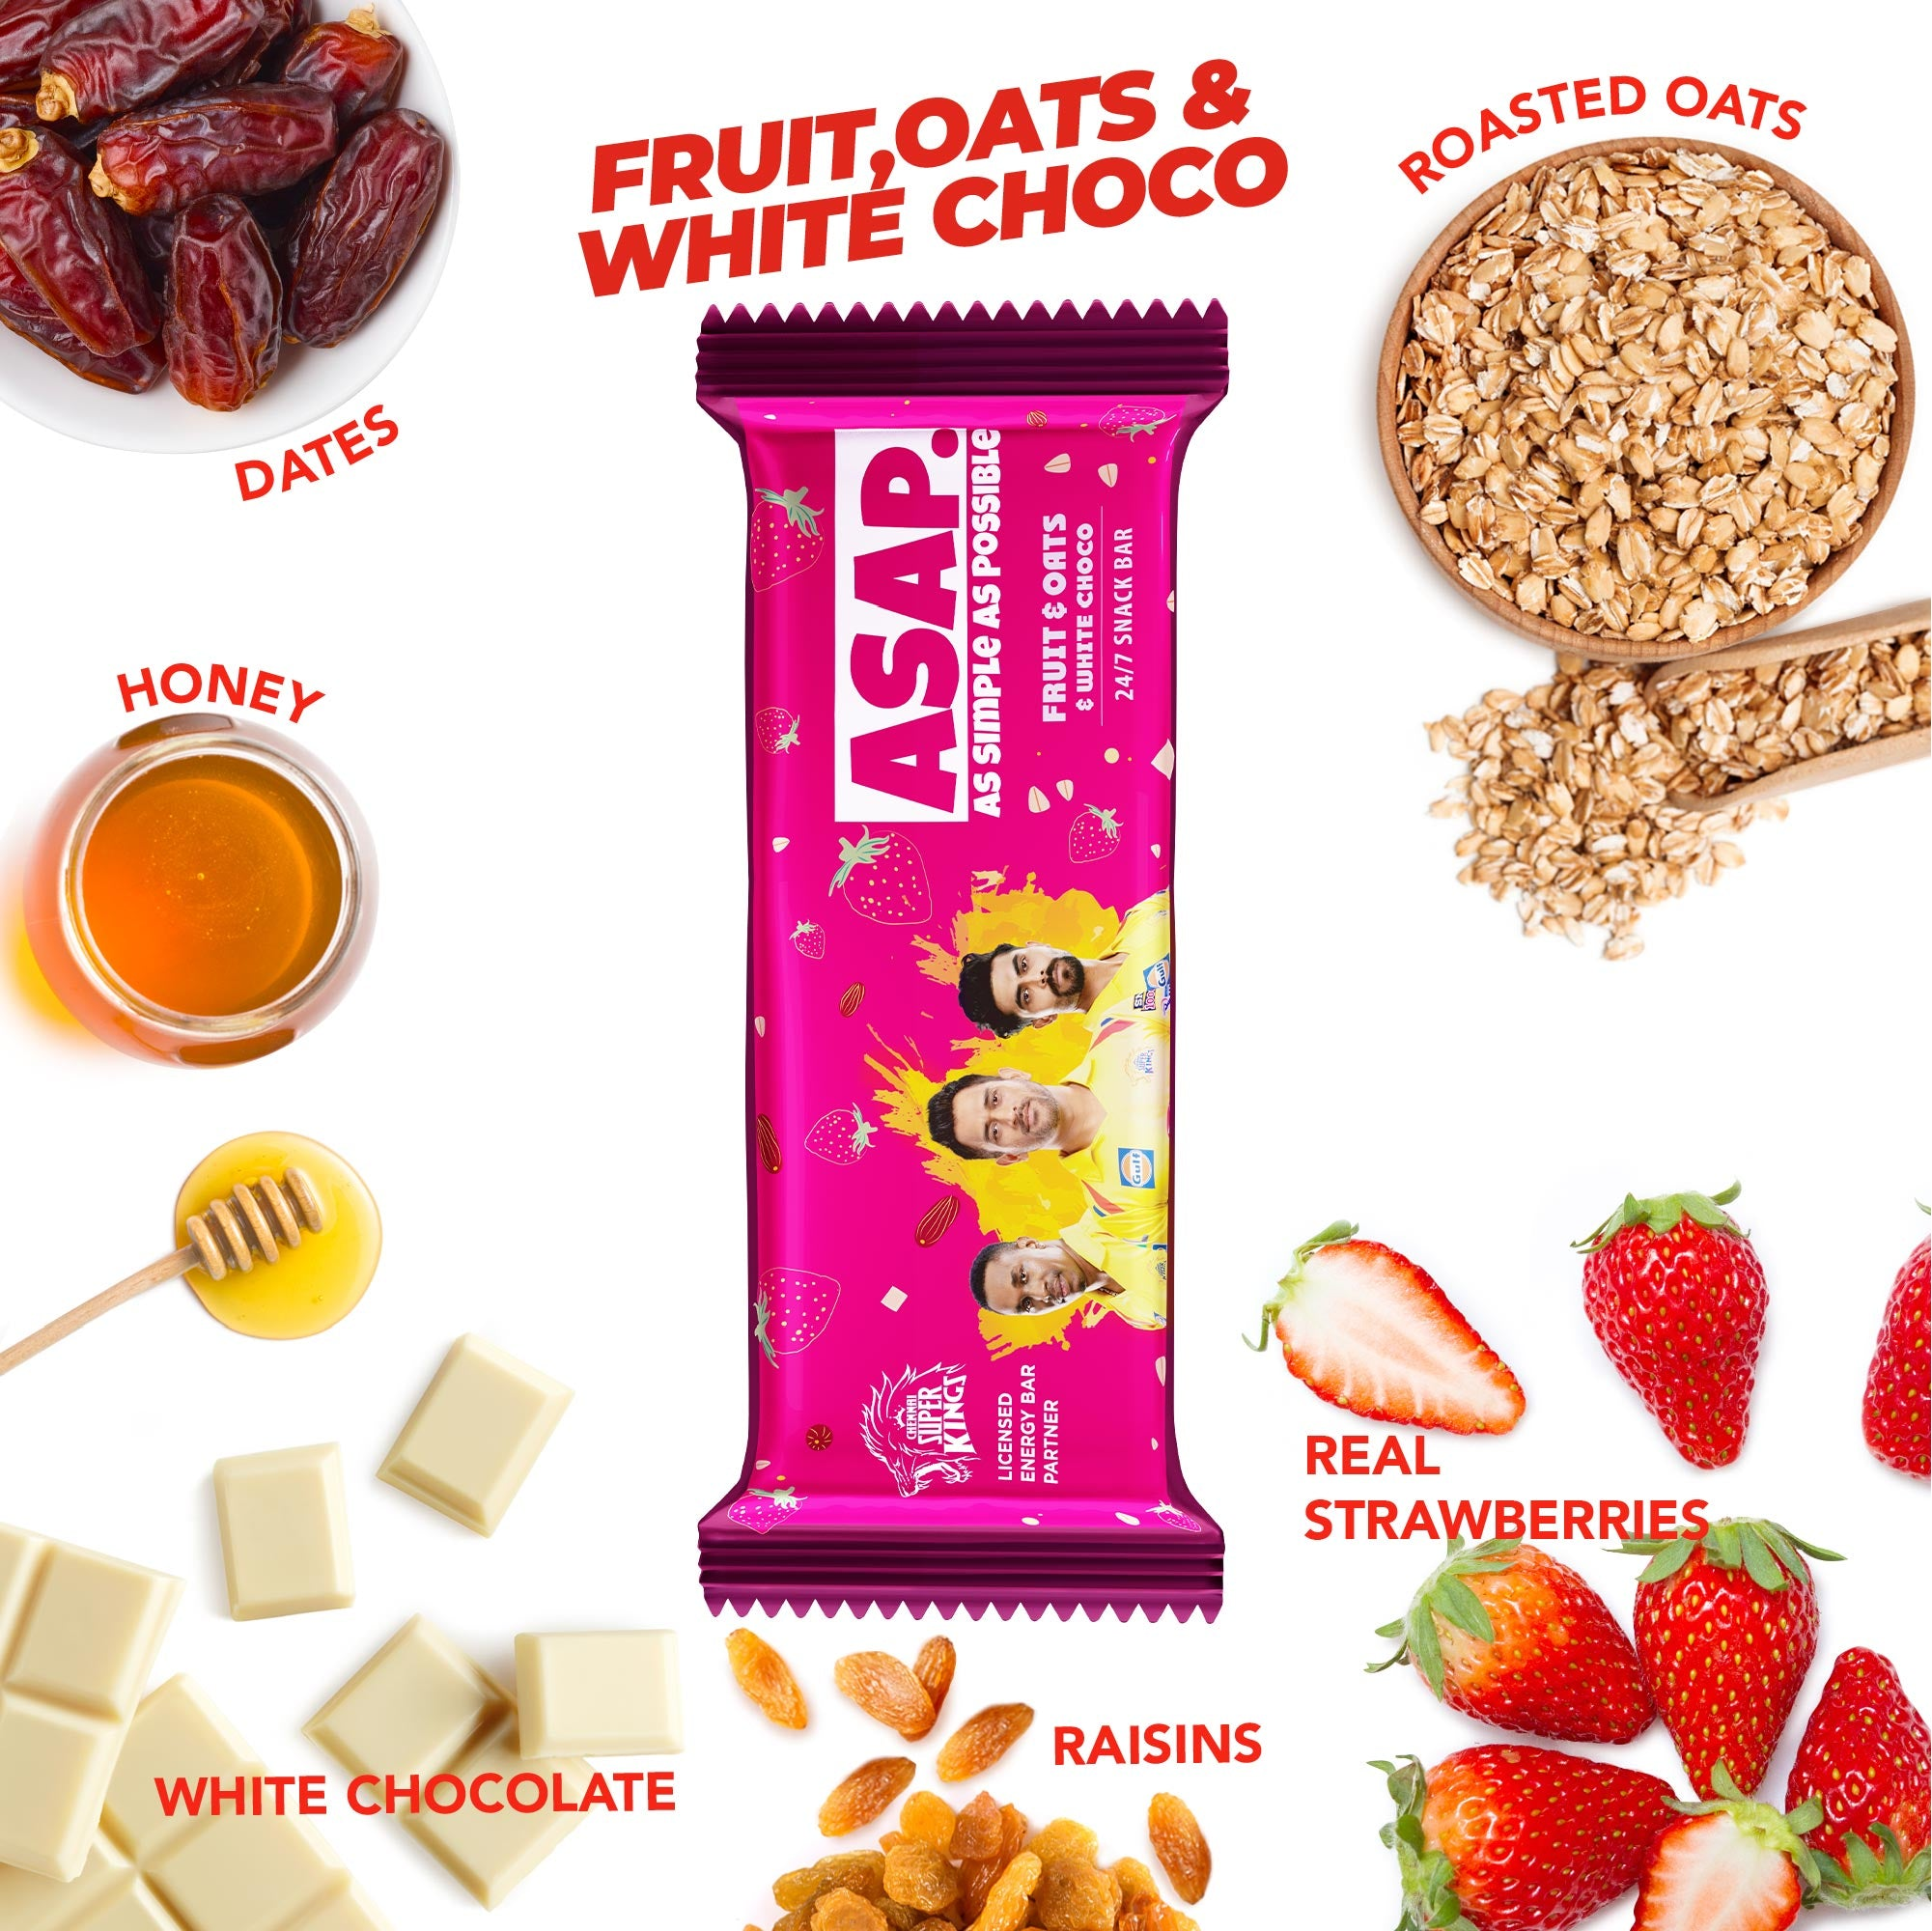 ASAP Fruit, Oats & White Choco snack bars - Family box of 12. Special edition CSK Packs